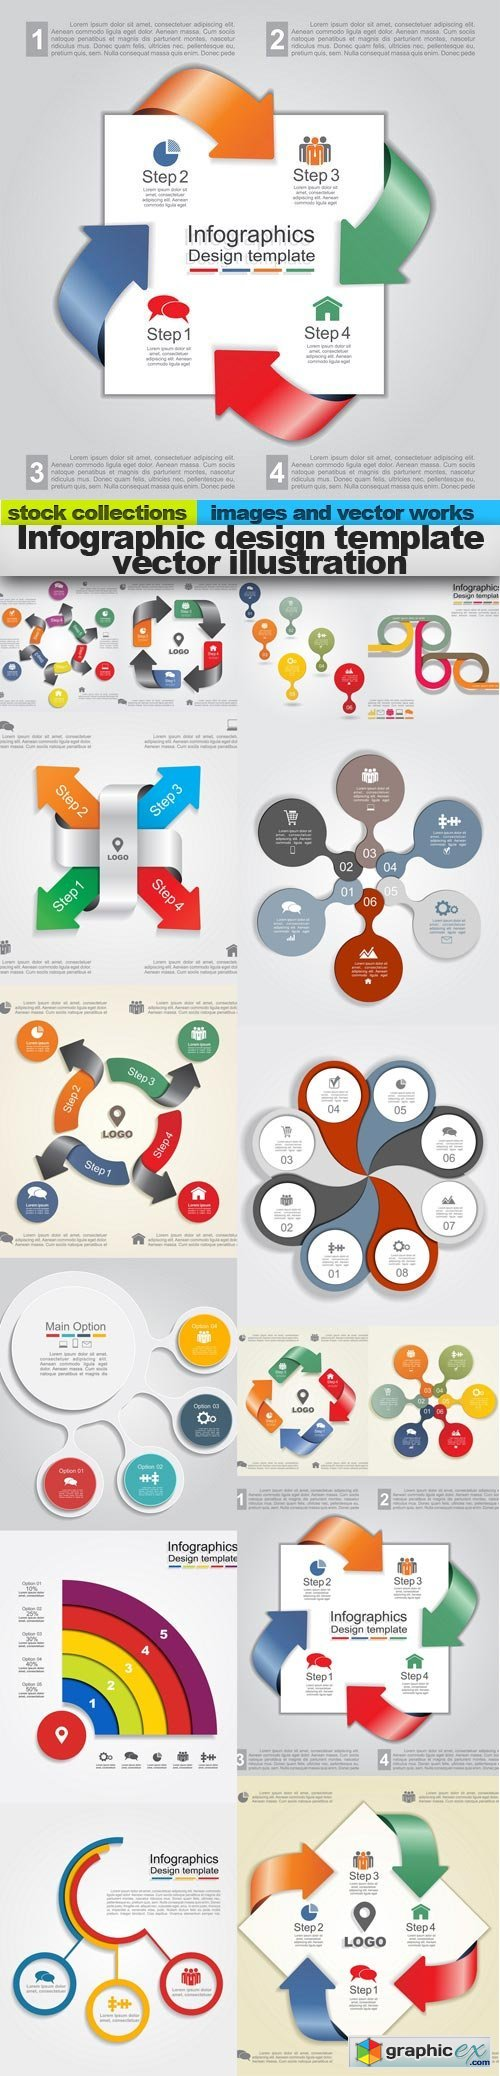 Infographic design template vector illustration, 15 x EPS